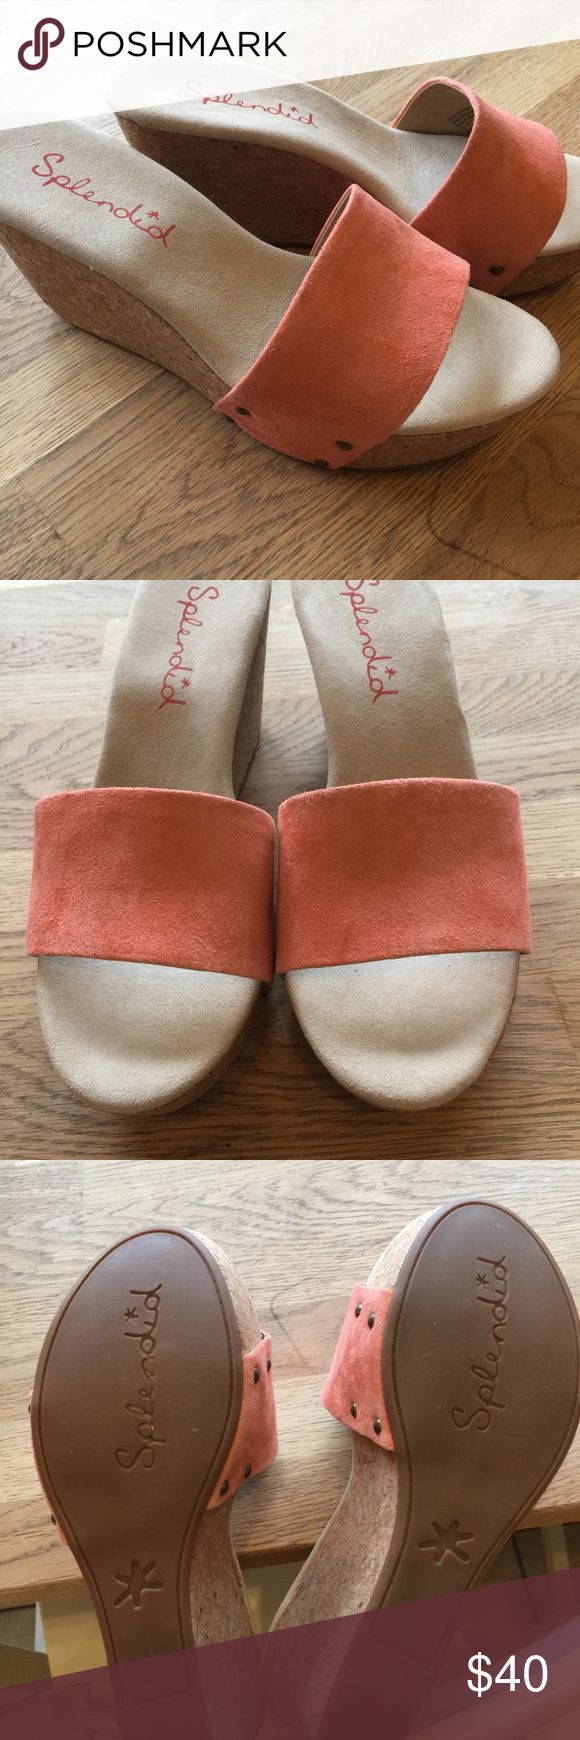 """Splendid brand """"greenville"""" cork wedge. Size 6.5 Brand new! Never worn. Don't have the box. Cute cork wedges with rivets and coral colored suede leather upper. Splendid Shoes Wedges"""